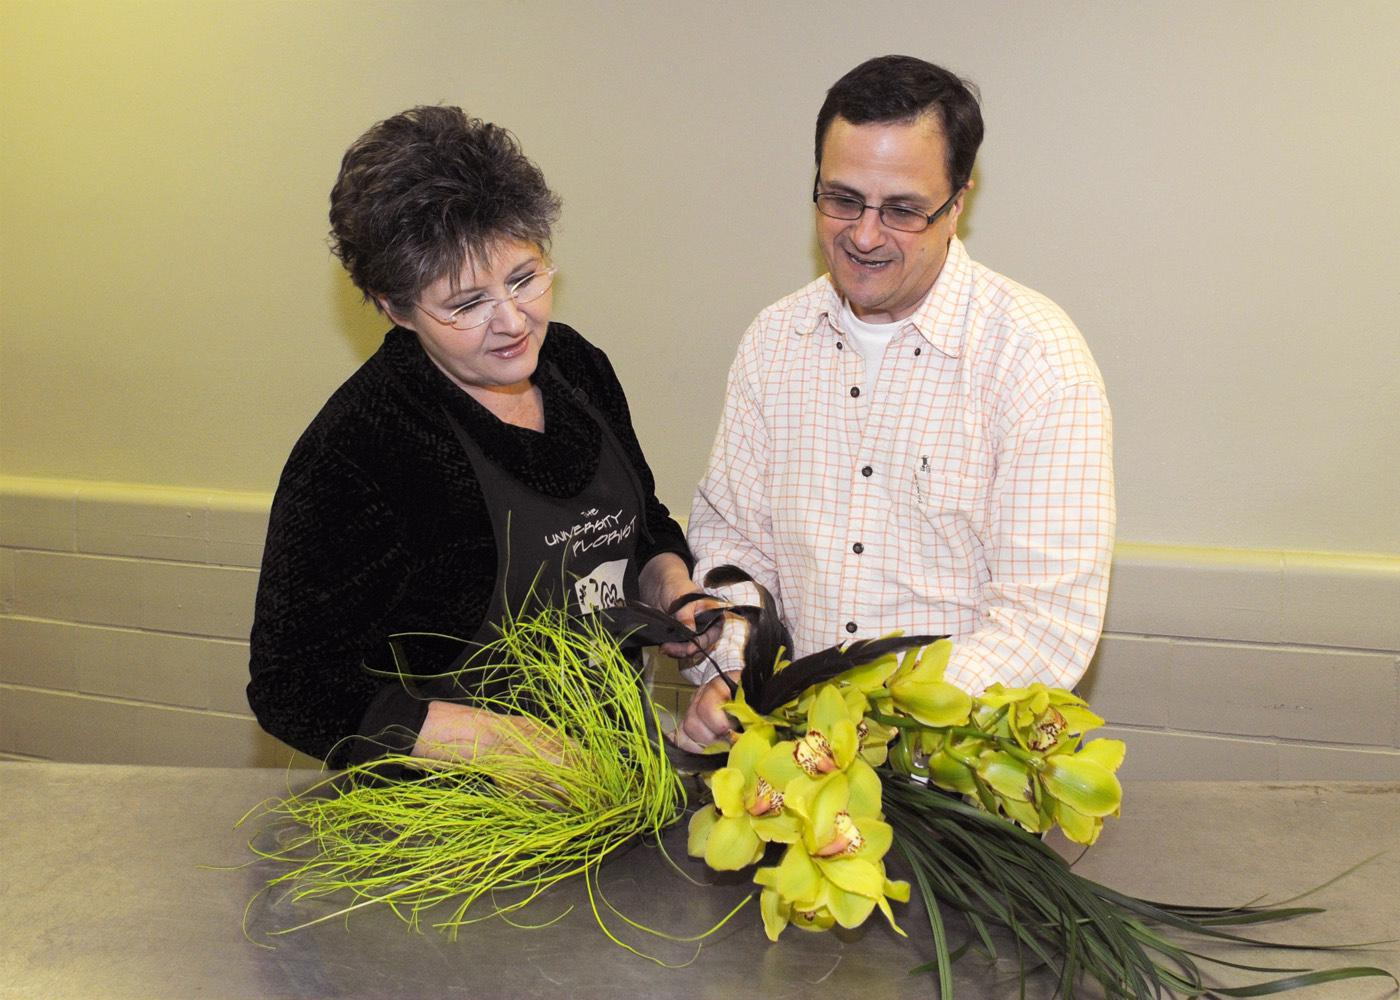 Mississippi State University florist manager Lynette McDougal and horticulture professor Jim DelPrince create a unique wedding arrangement of cymbidium orchids, lily grass, bear grass and feathers. (Photo by Kat Lawrence)